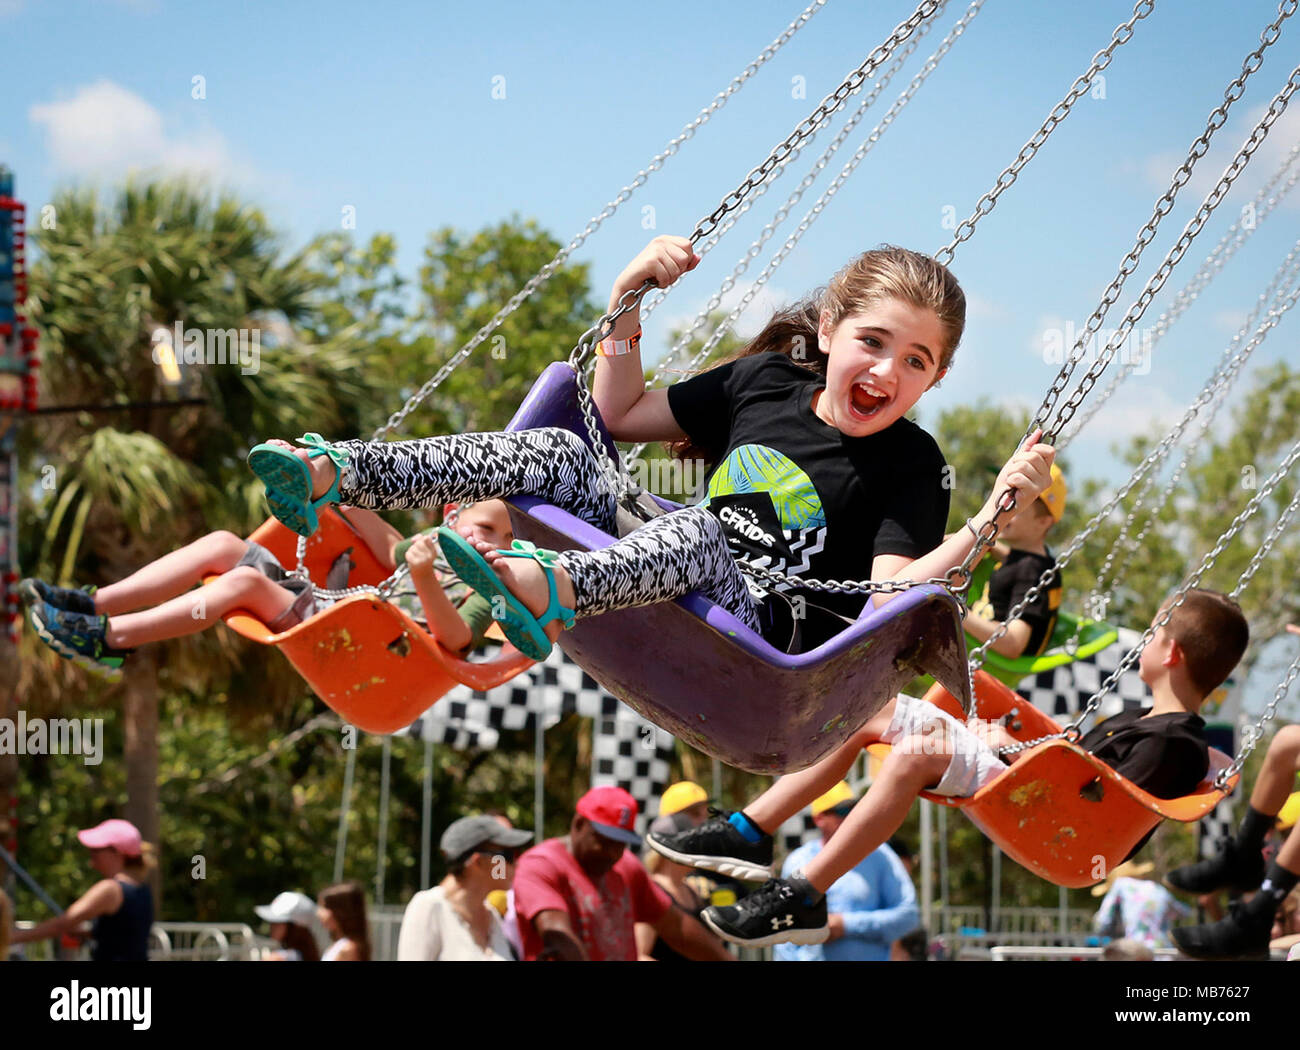 Florida, USA. 7th Apr, 2018. Children enjoy the Swinger ride at the North Palm Beach Heritage Day Festival in Anchorage Park Saturday, April 7, 2018. Following a Parade featuring bands, civic groups, clubs and organizations from the area, the Festival at Anchorage Park featured a business expo, carnival rides, food and drinks.games, musical entertainment, a cornhole tournament, and more. Credit: Bruce R. Bennett/The Palm Beach Post/ZUMA Wire/Alamy Live News - Stock Image